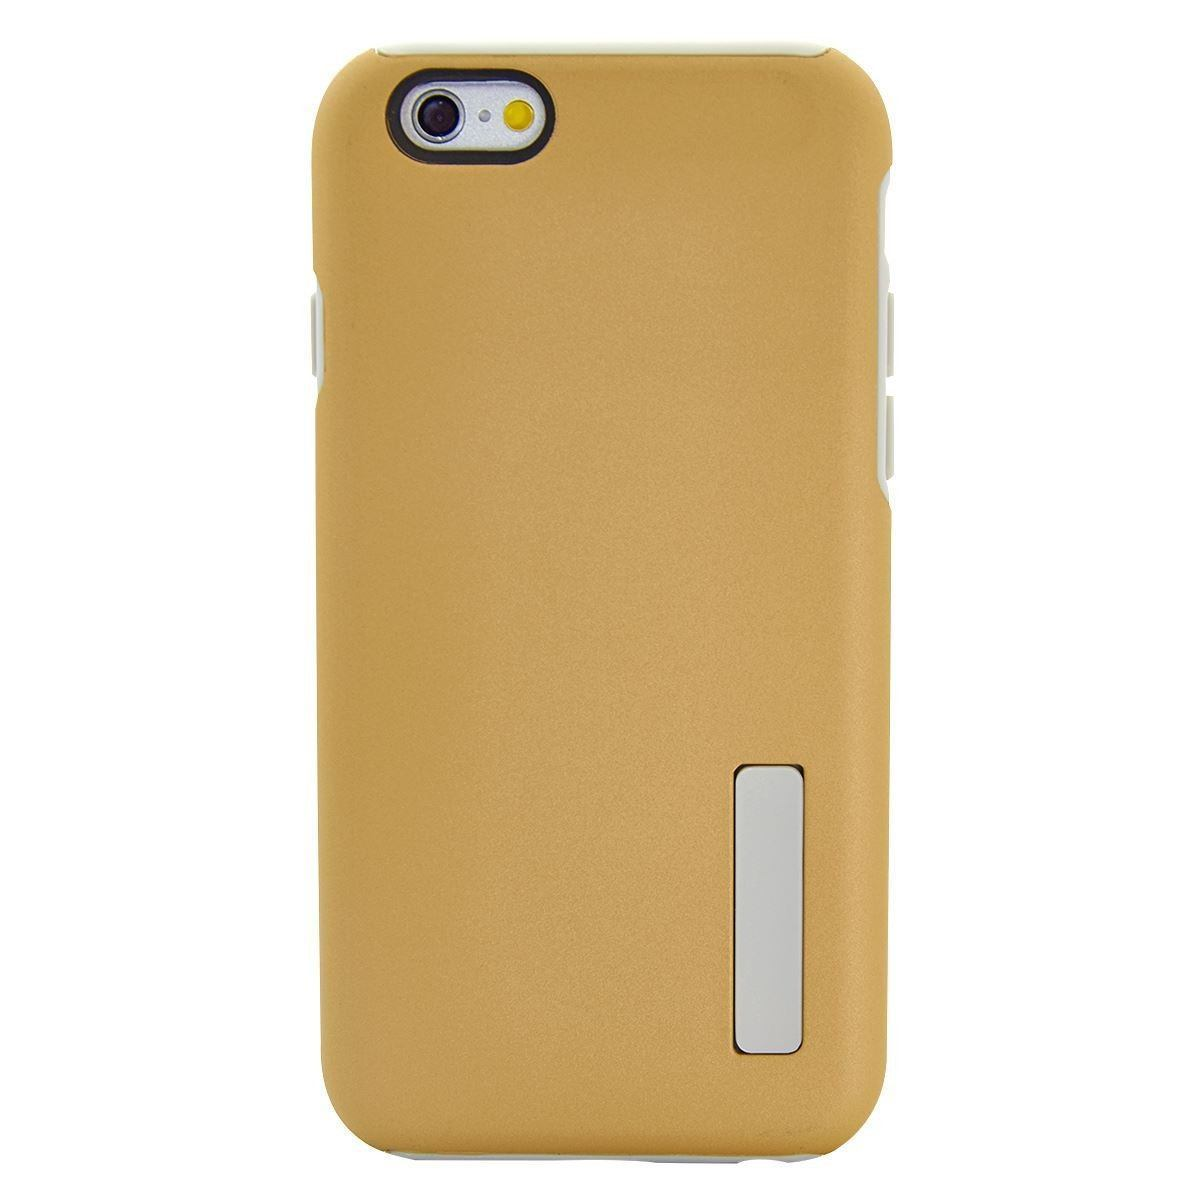 Ink Case for iPhone 6 - Gold